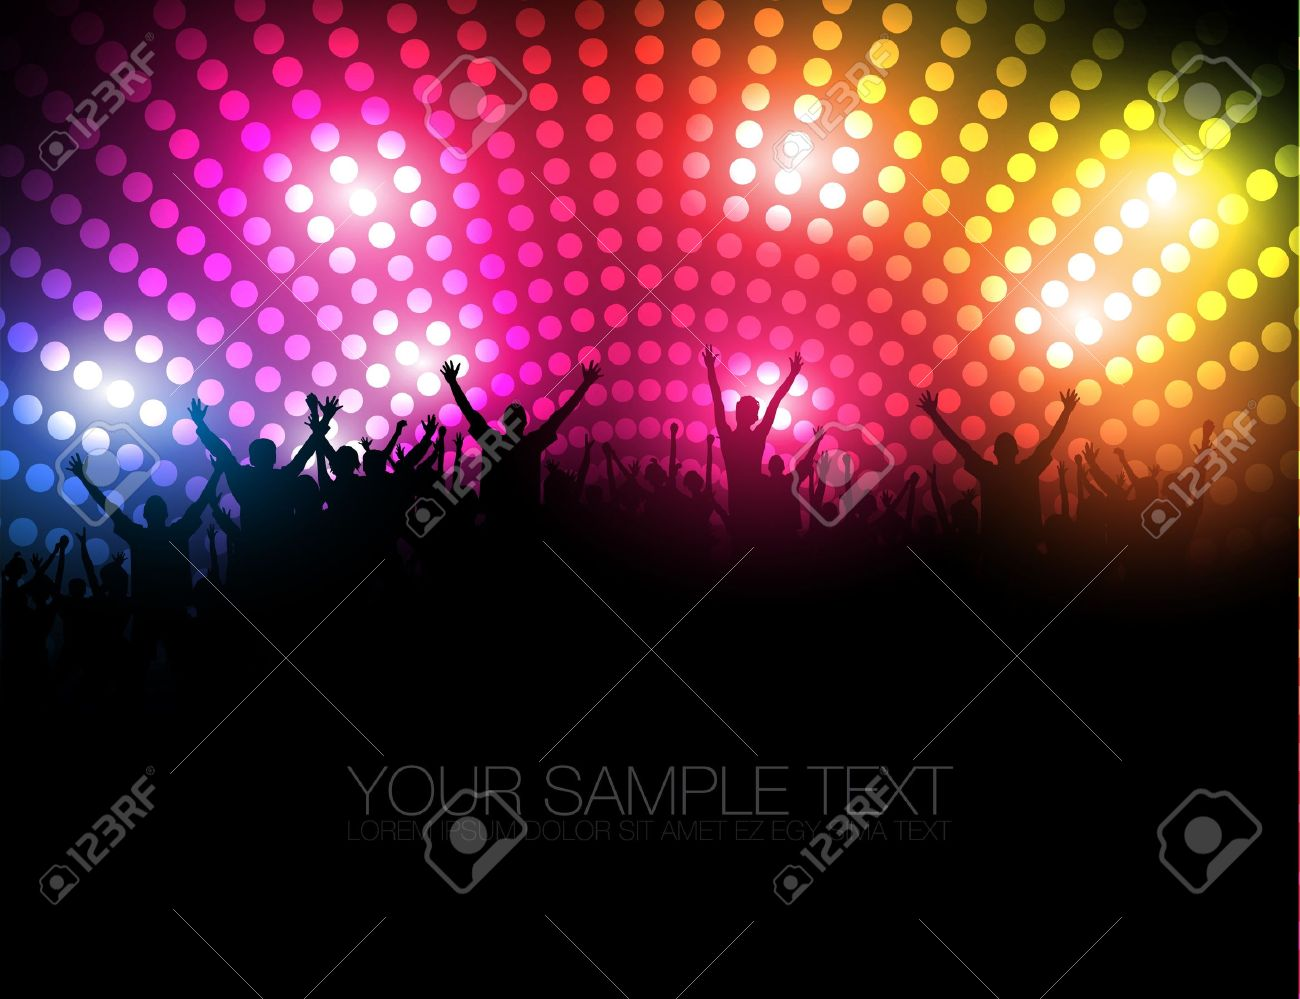 Party People   Background - Dancing Young People Stock Vector - 14430849